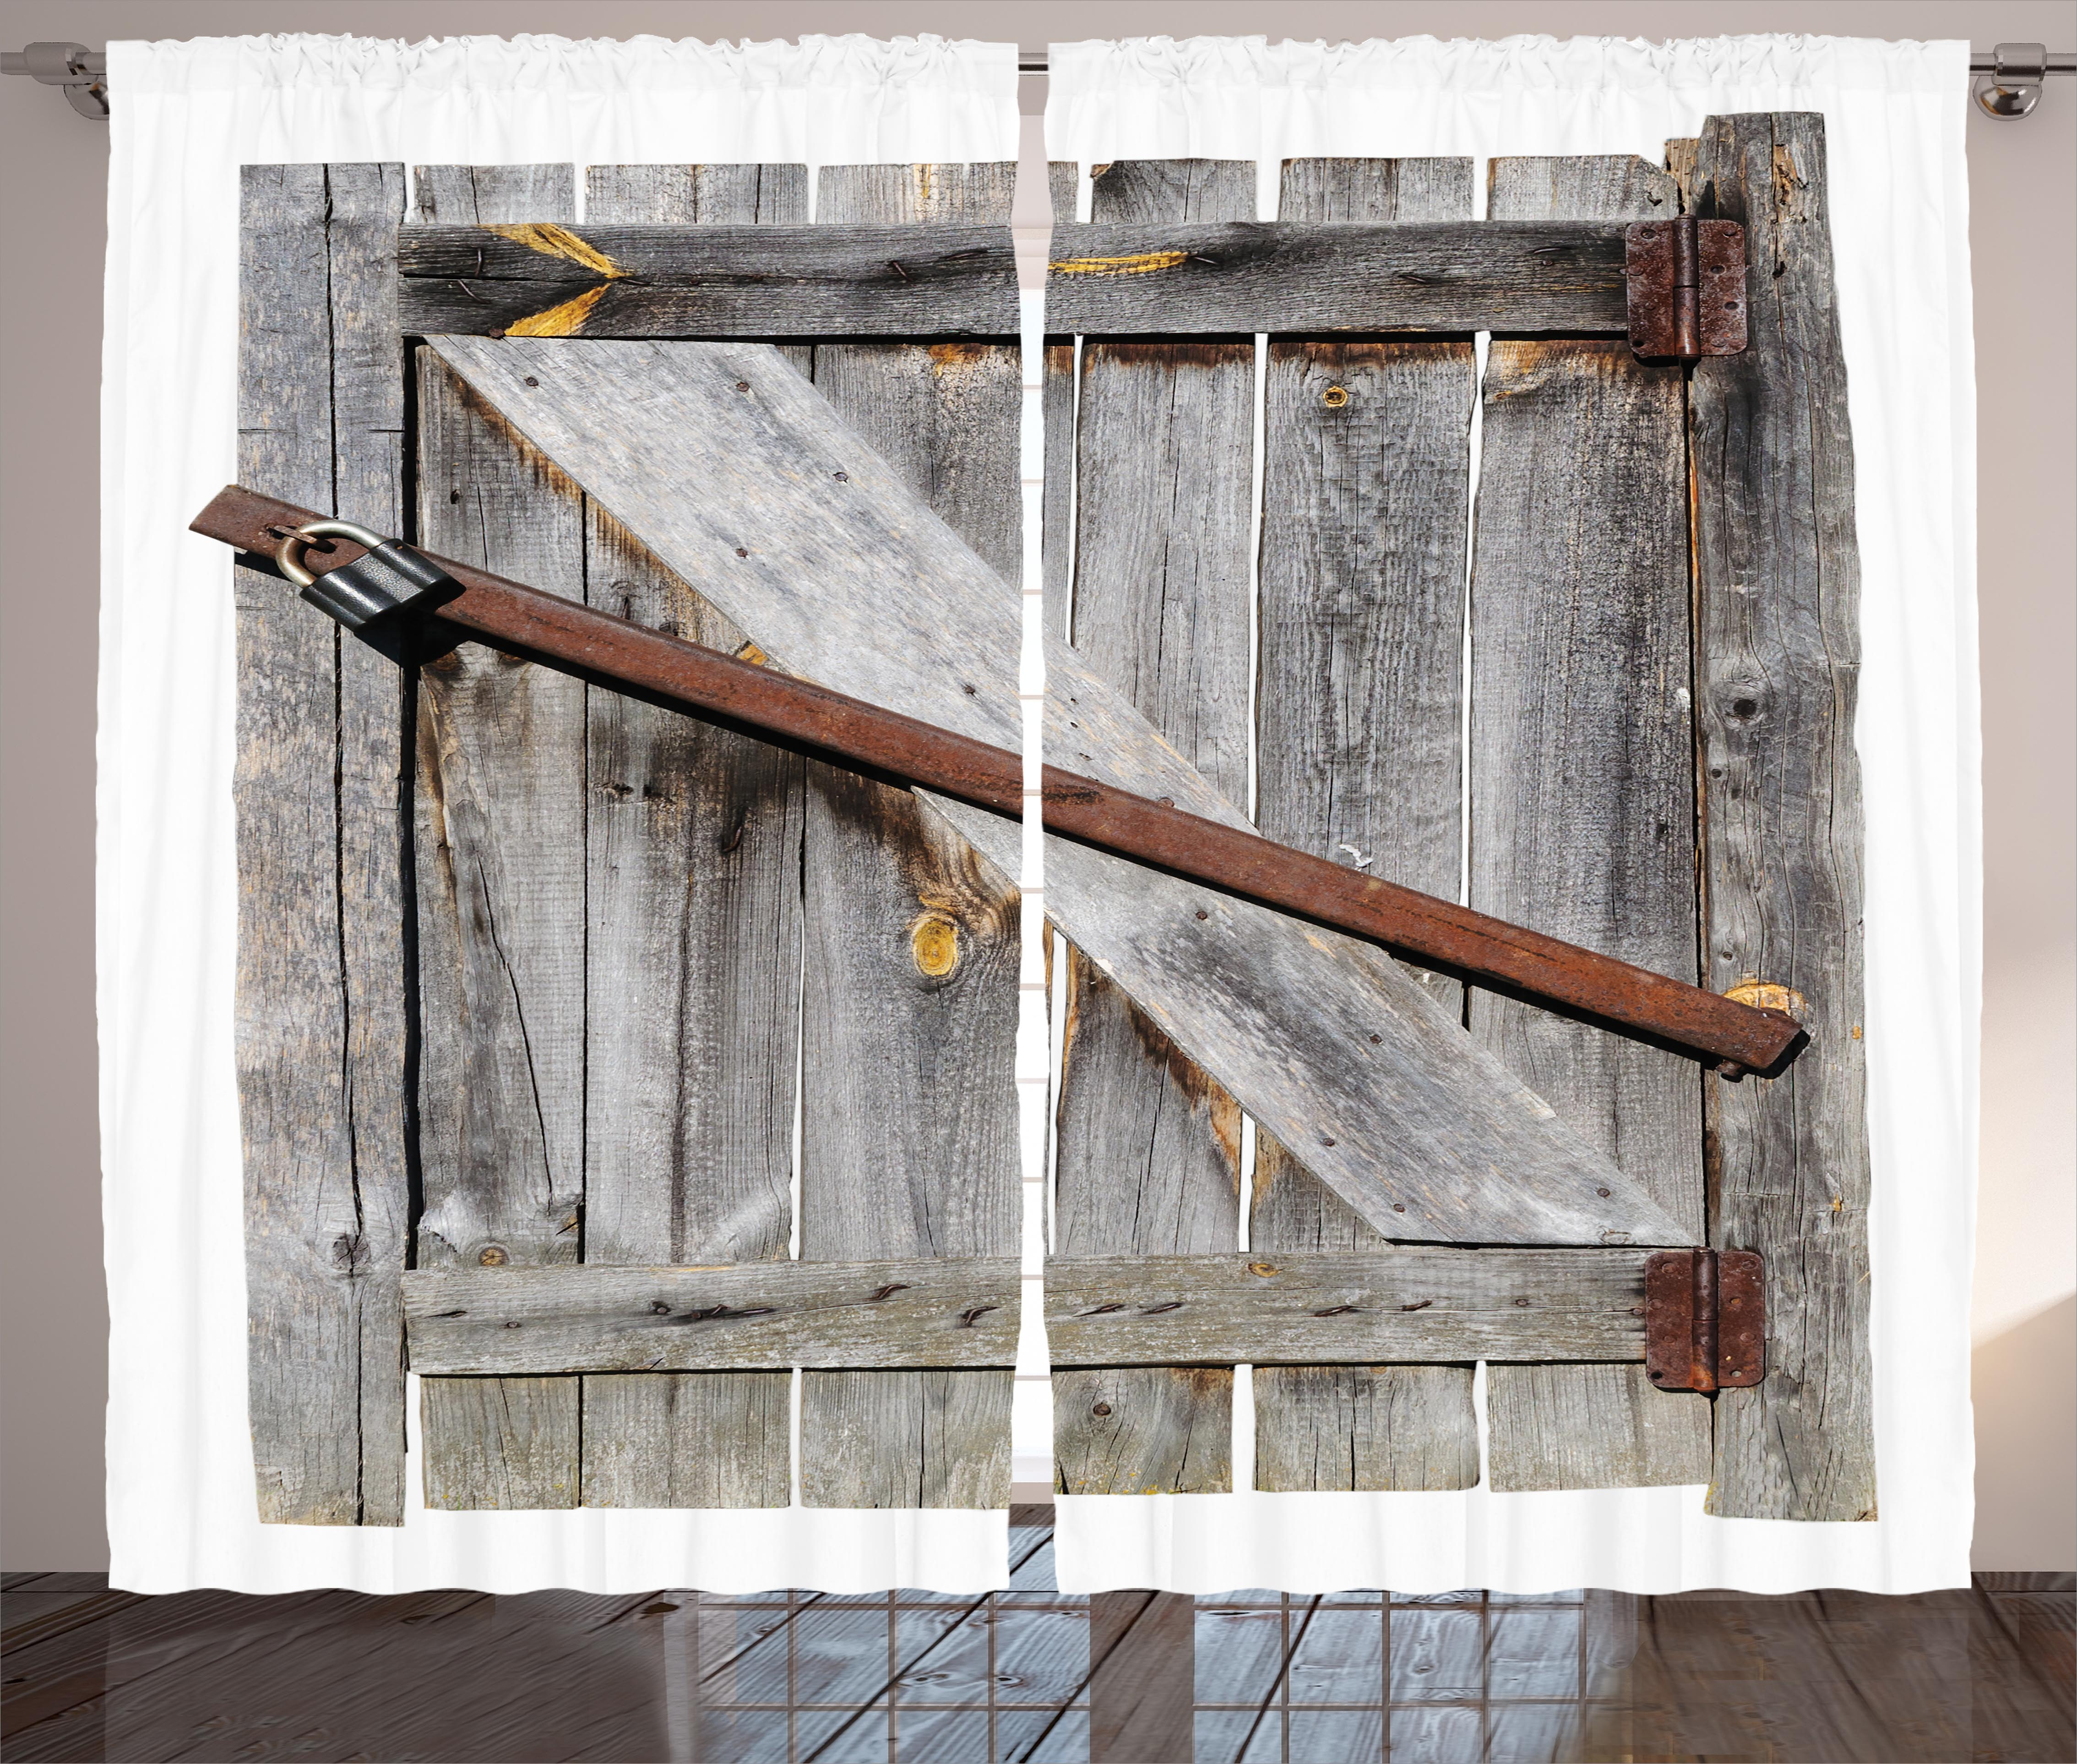 Rustic Curtains 2 Panels Set, Aged Wood Barn Door With Rusty Crossed Locks  Abandoned Ancient